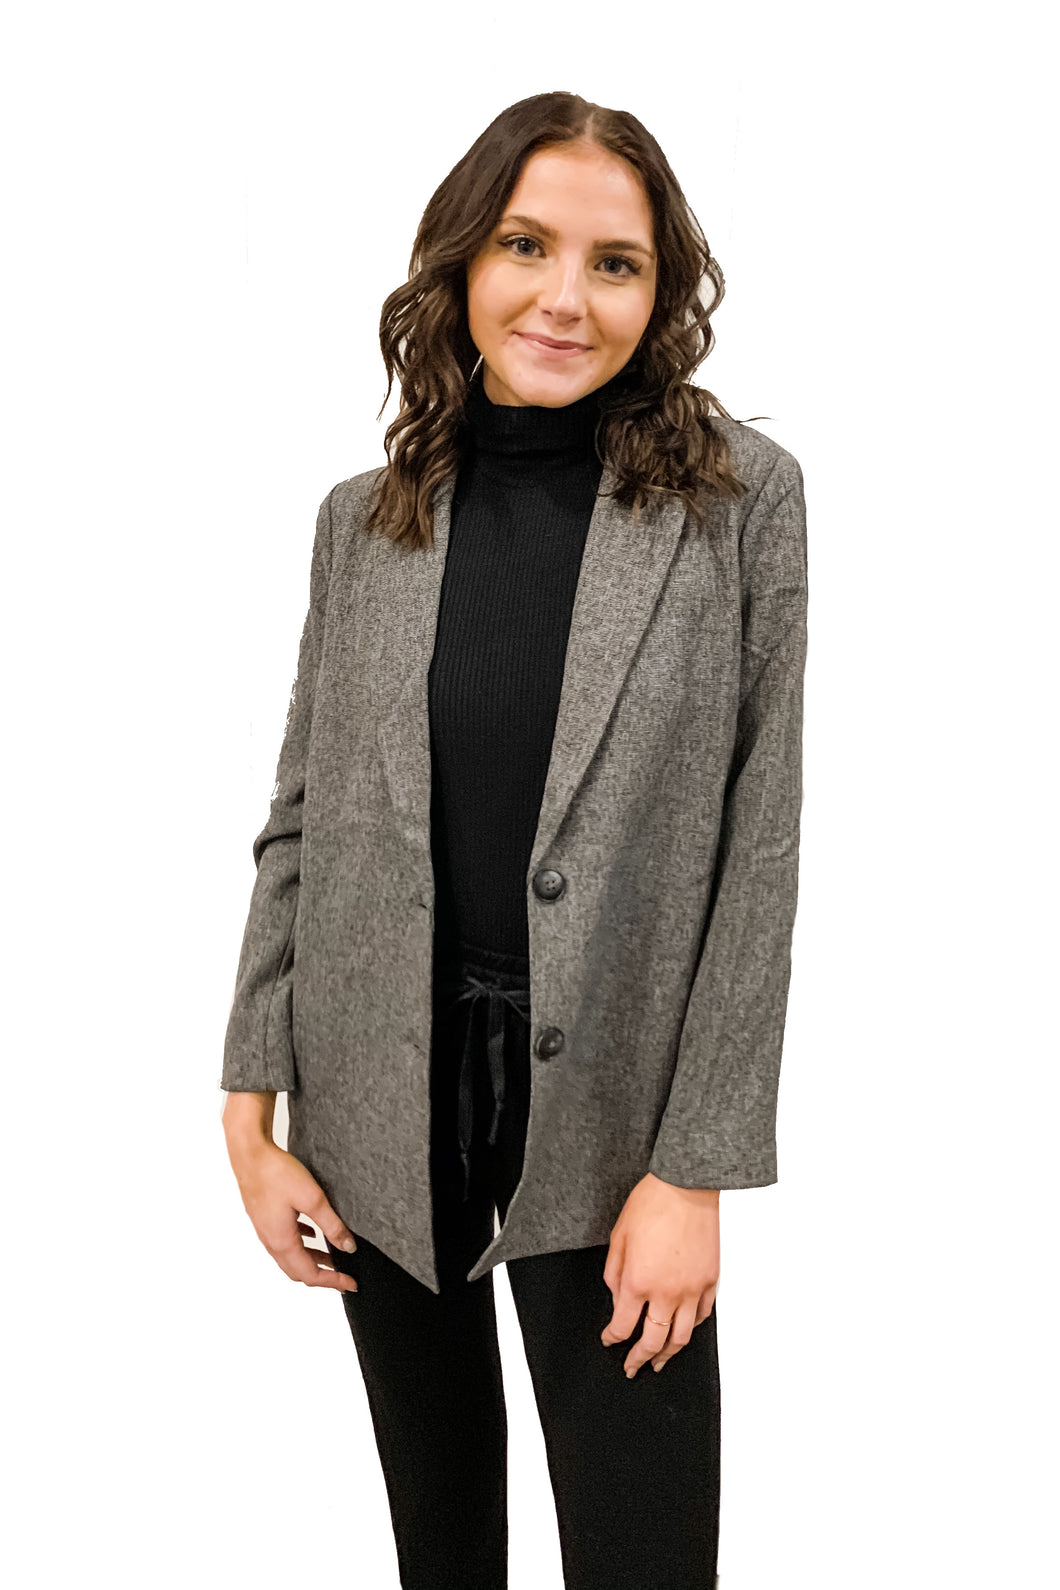 The Boyfriend Blazer